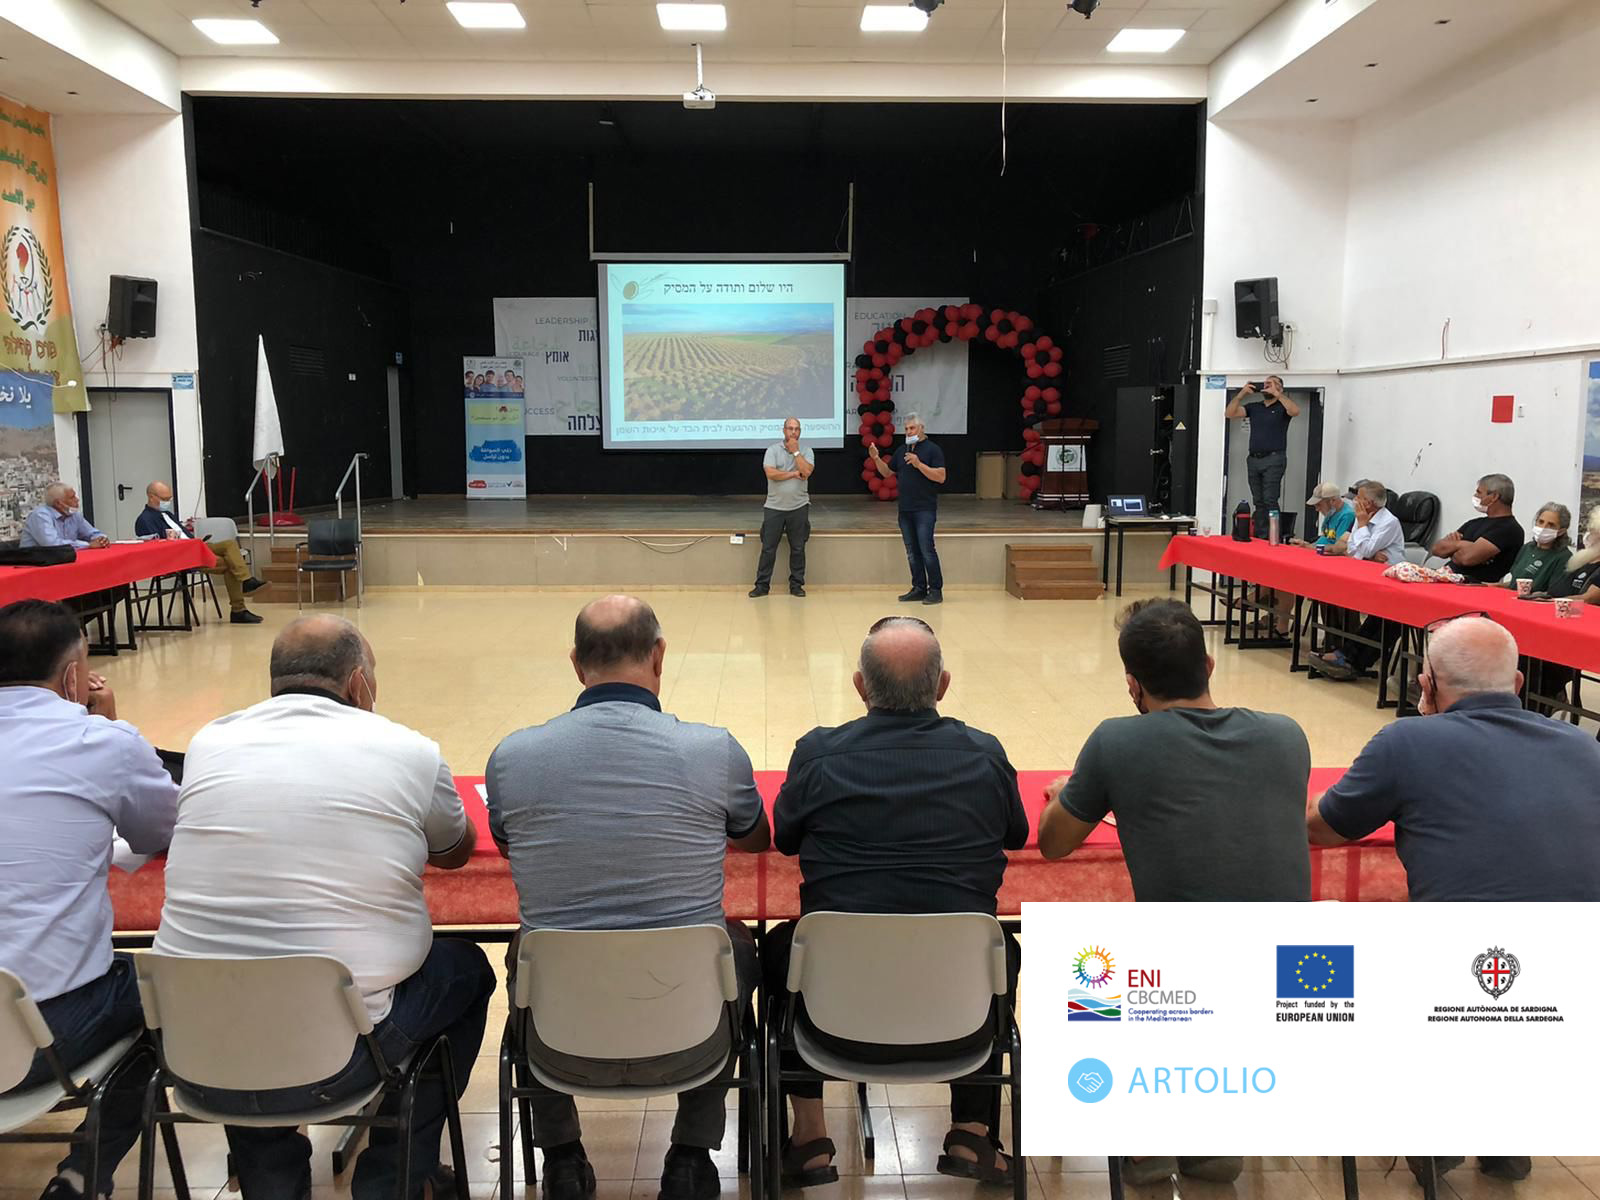 ARTOLIO ENI CBC MED  Galilee area of Israel hosted by BeitHakerem Municipal Cluster